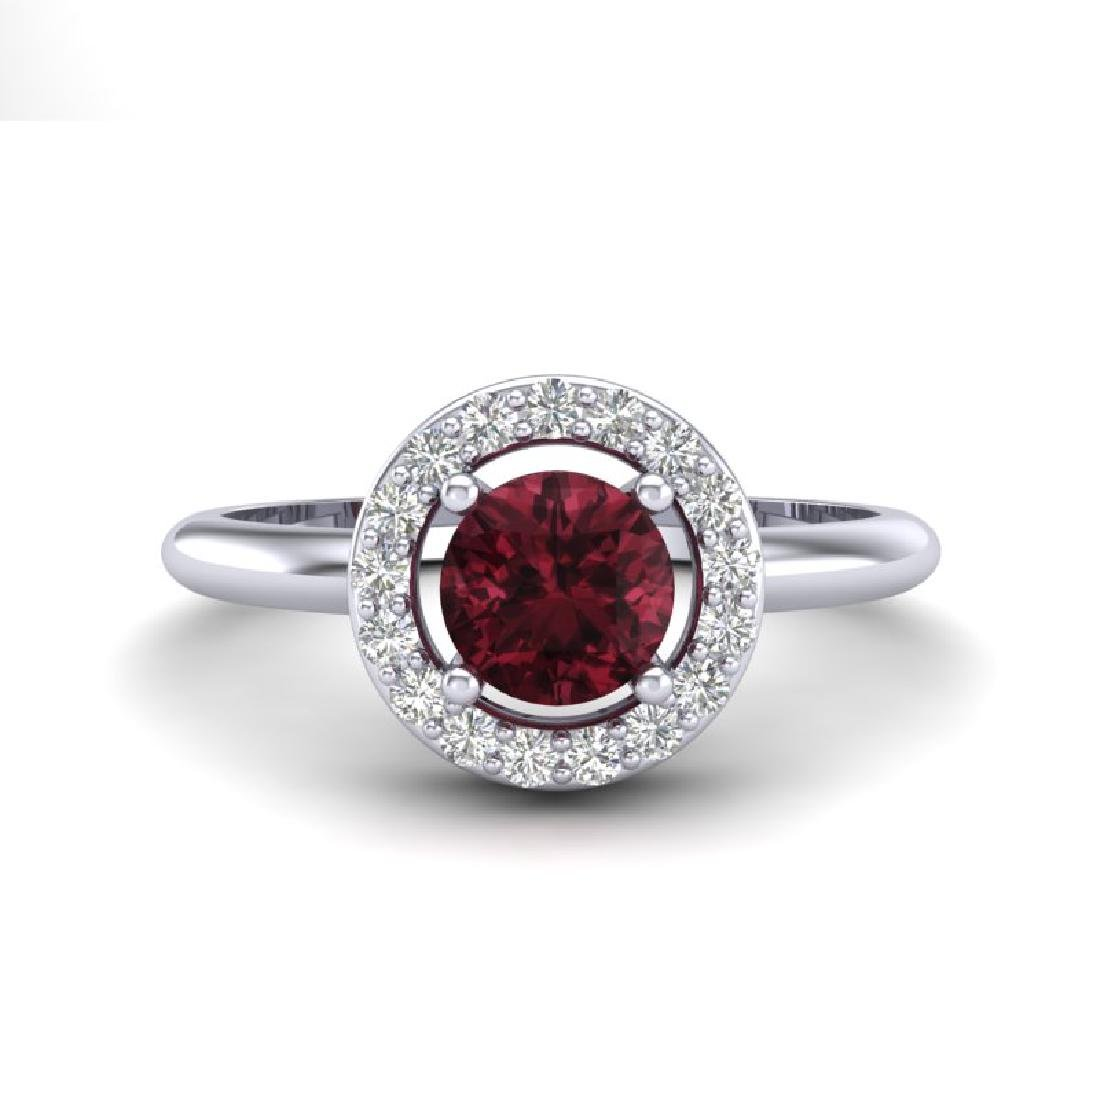 0.75 CTW Garnet & Micro Halo VS/SI Diamond Ring 18K